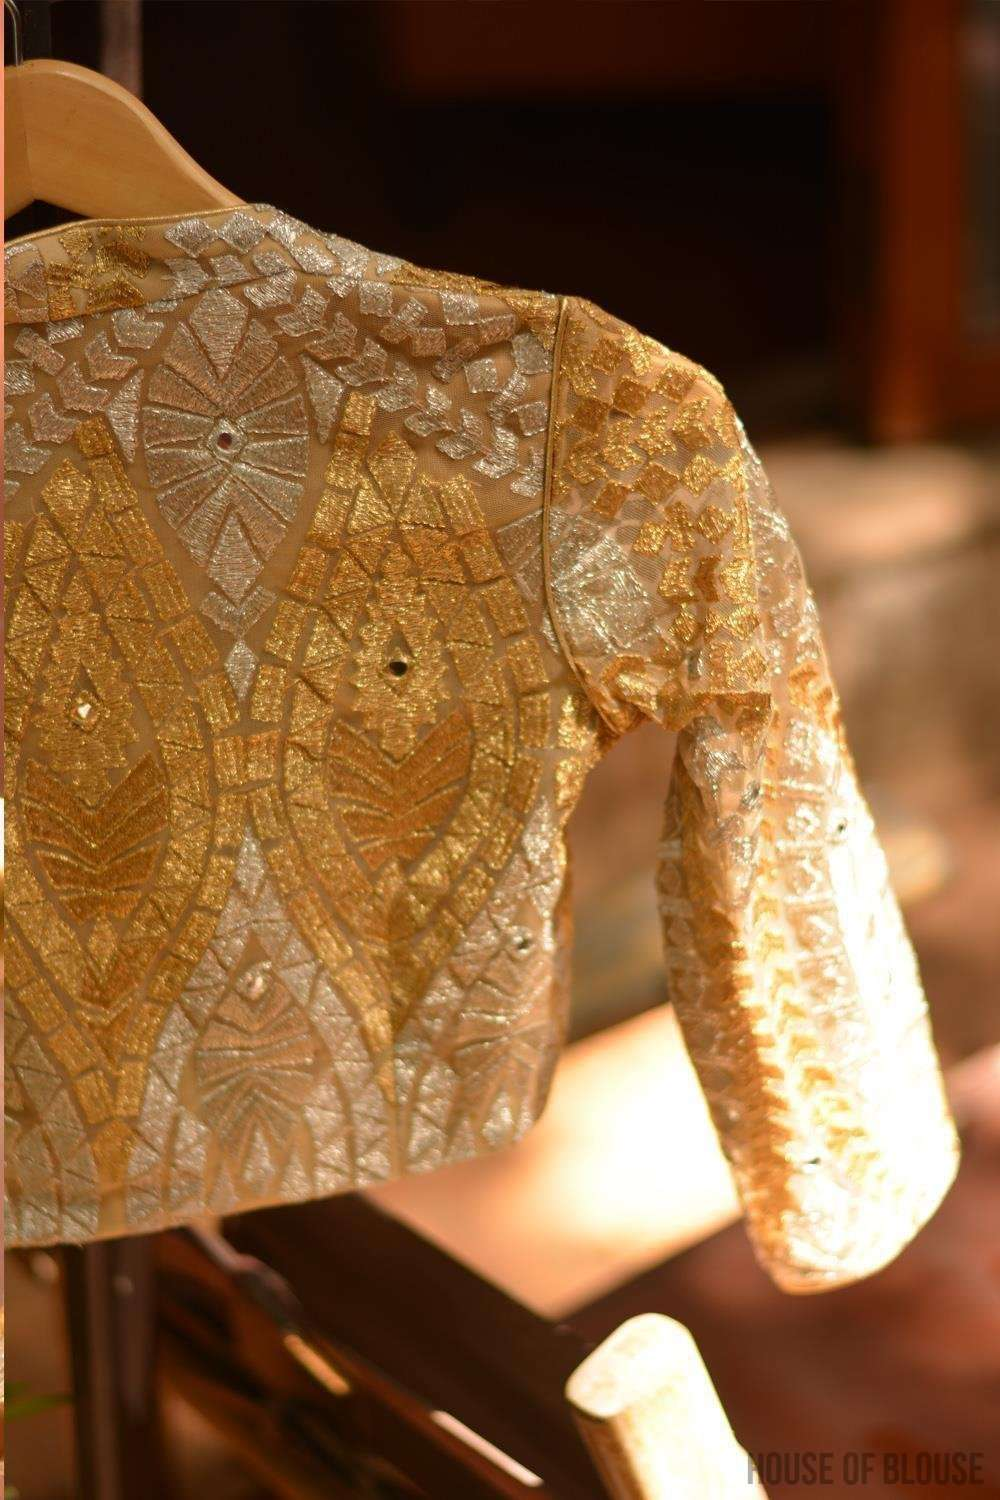 Gold and silver threadwork blouse with sweetheart neck - House of Blouse